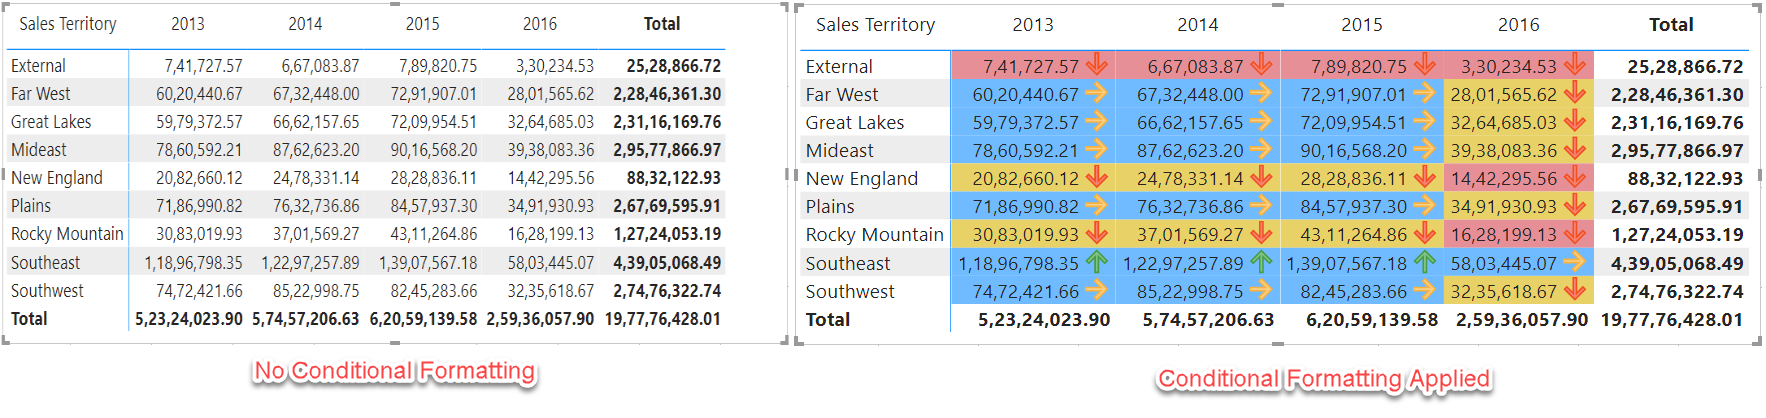 Conditional Formatting in Power BI Comparison